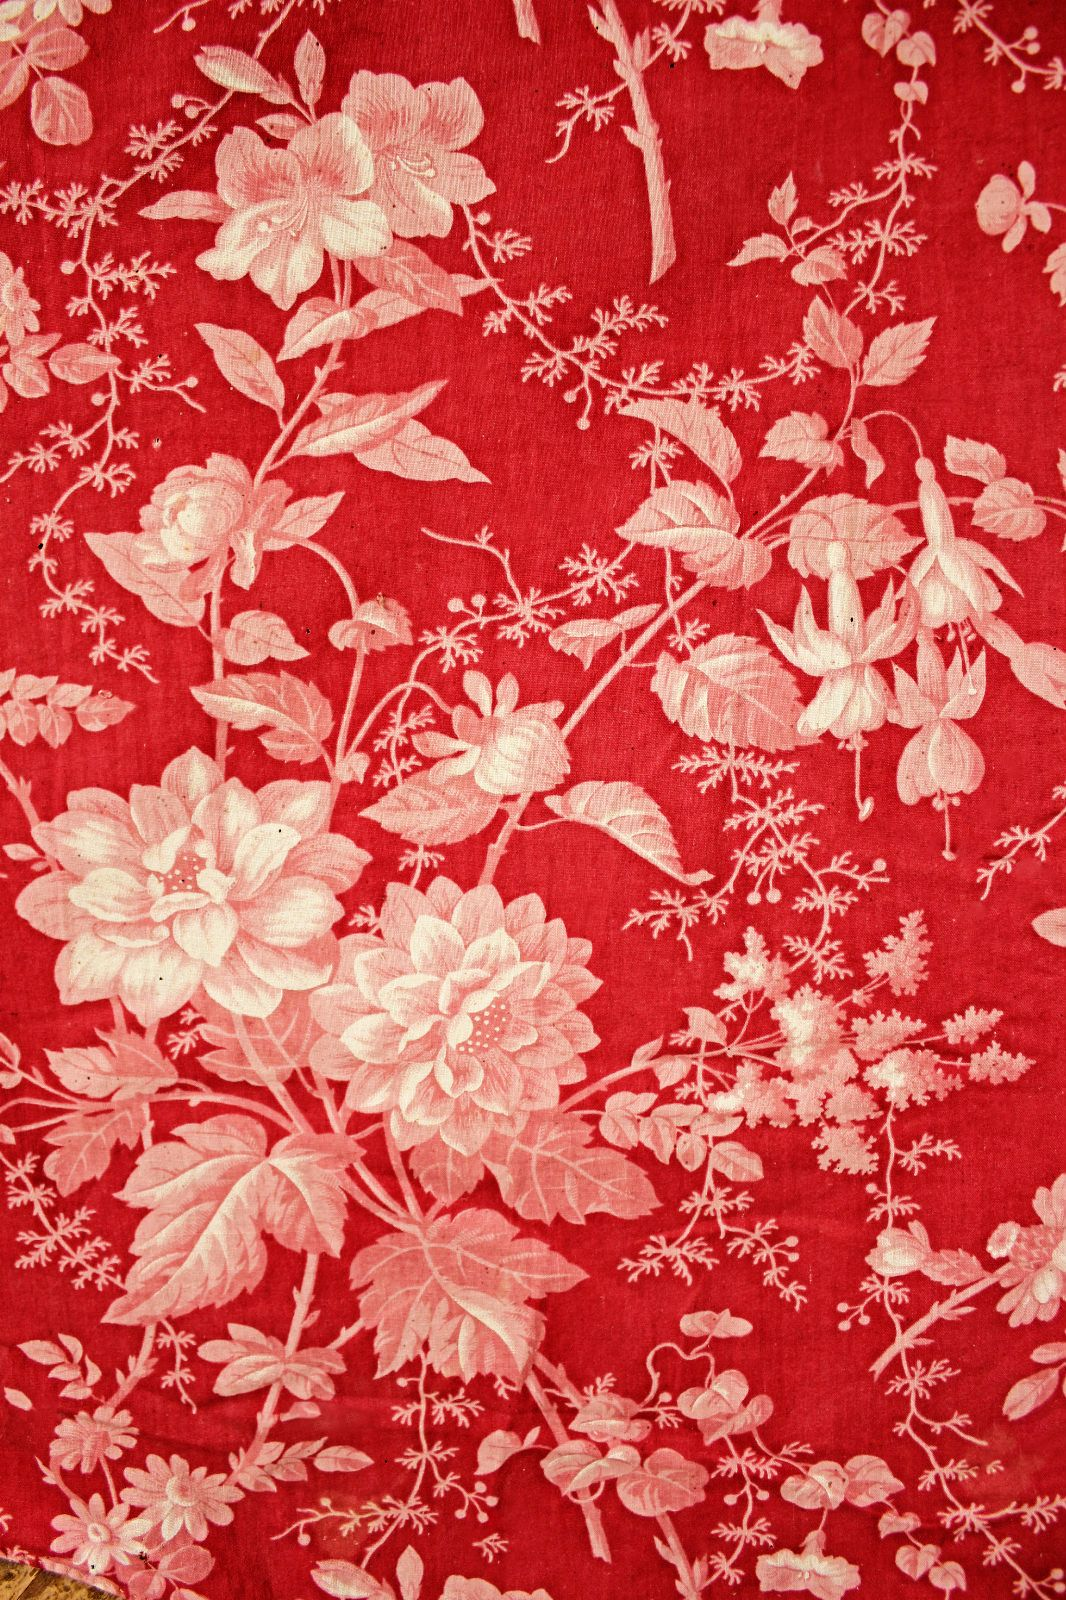 Antique French Textile ca. 1860 | ReD, WhITe AnD CreAm ...